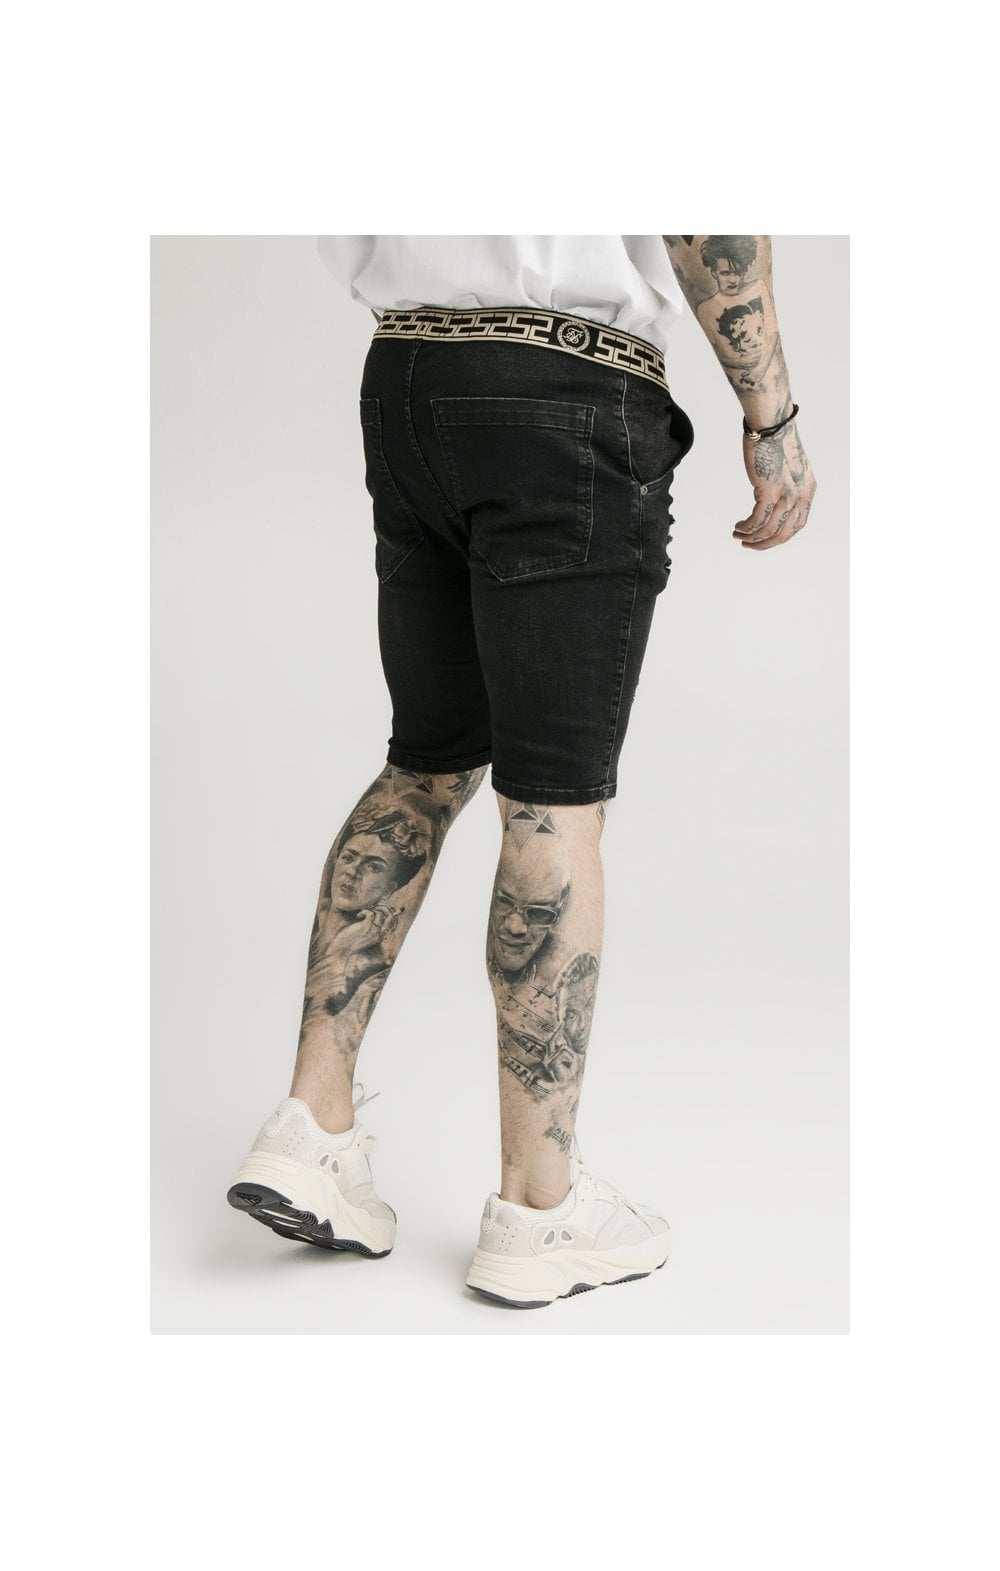 Load image into Gallery viewer, SikSilk Elasticated Waist Distressed Denim Shorts – Black (3)